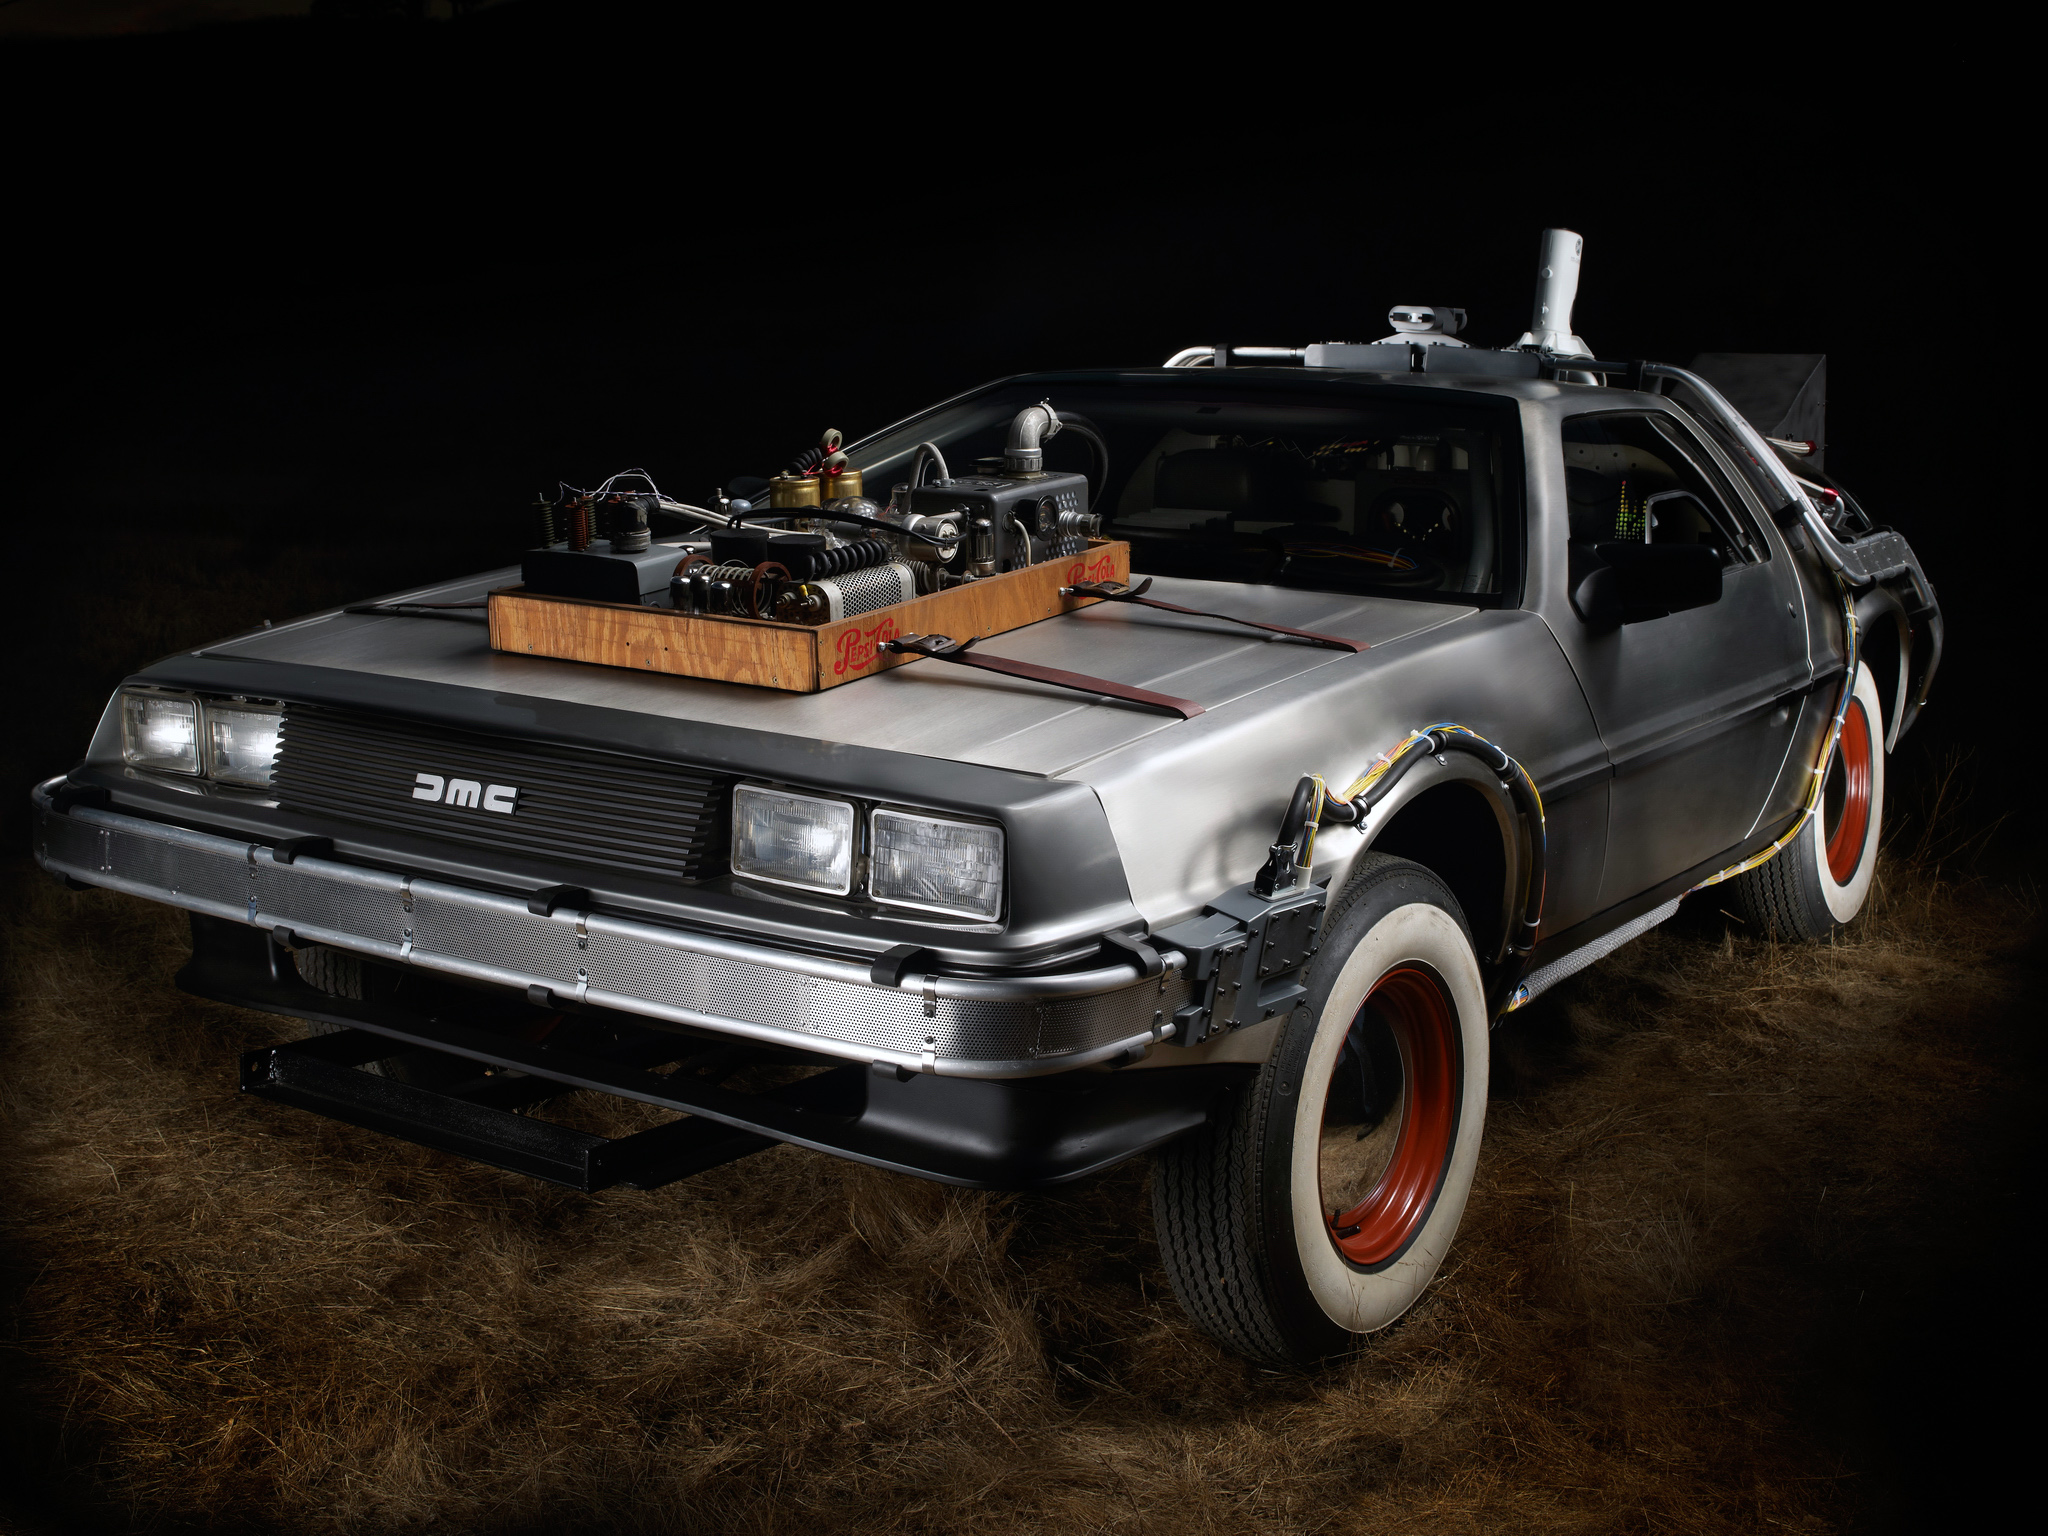 delorean wallpaper download - photo #23